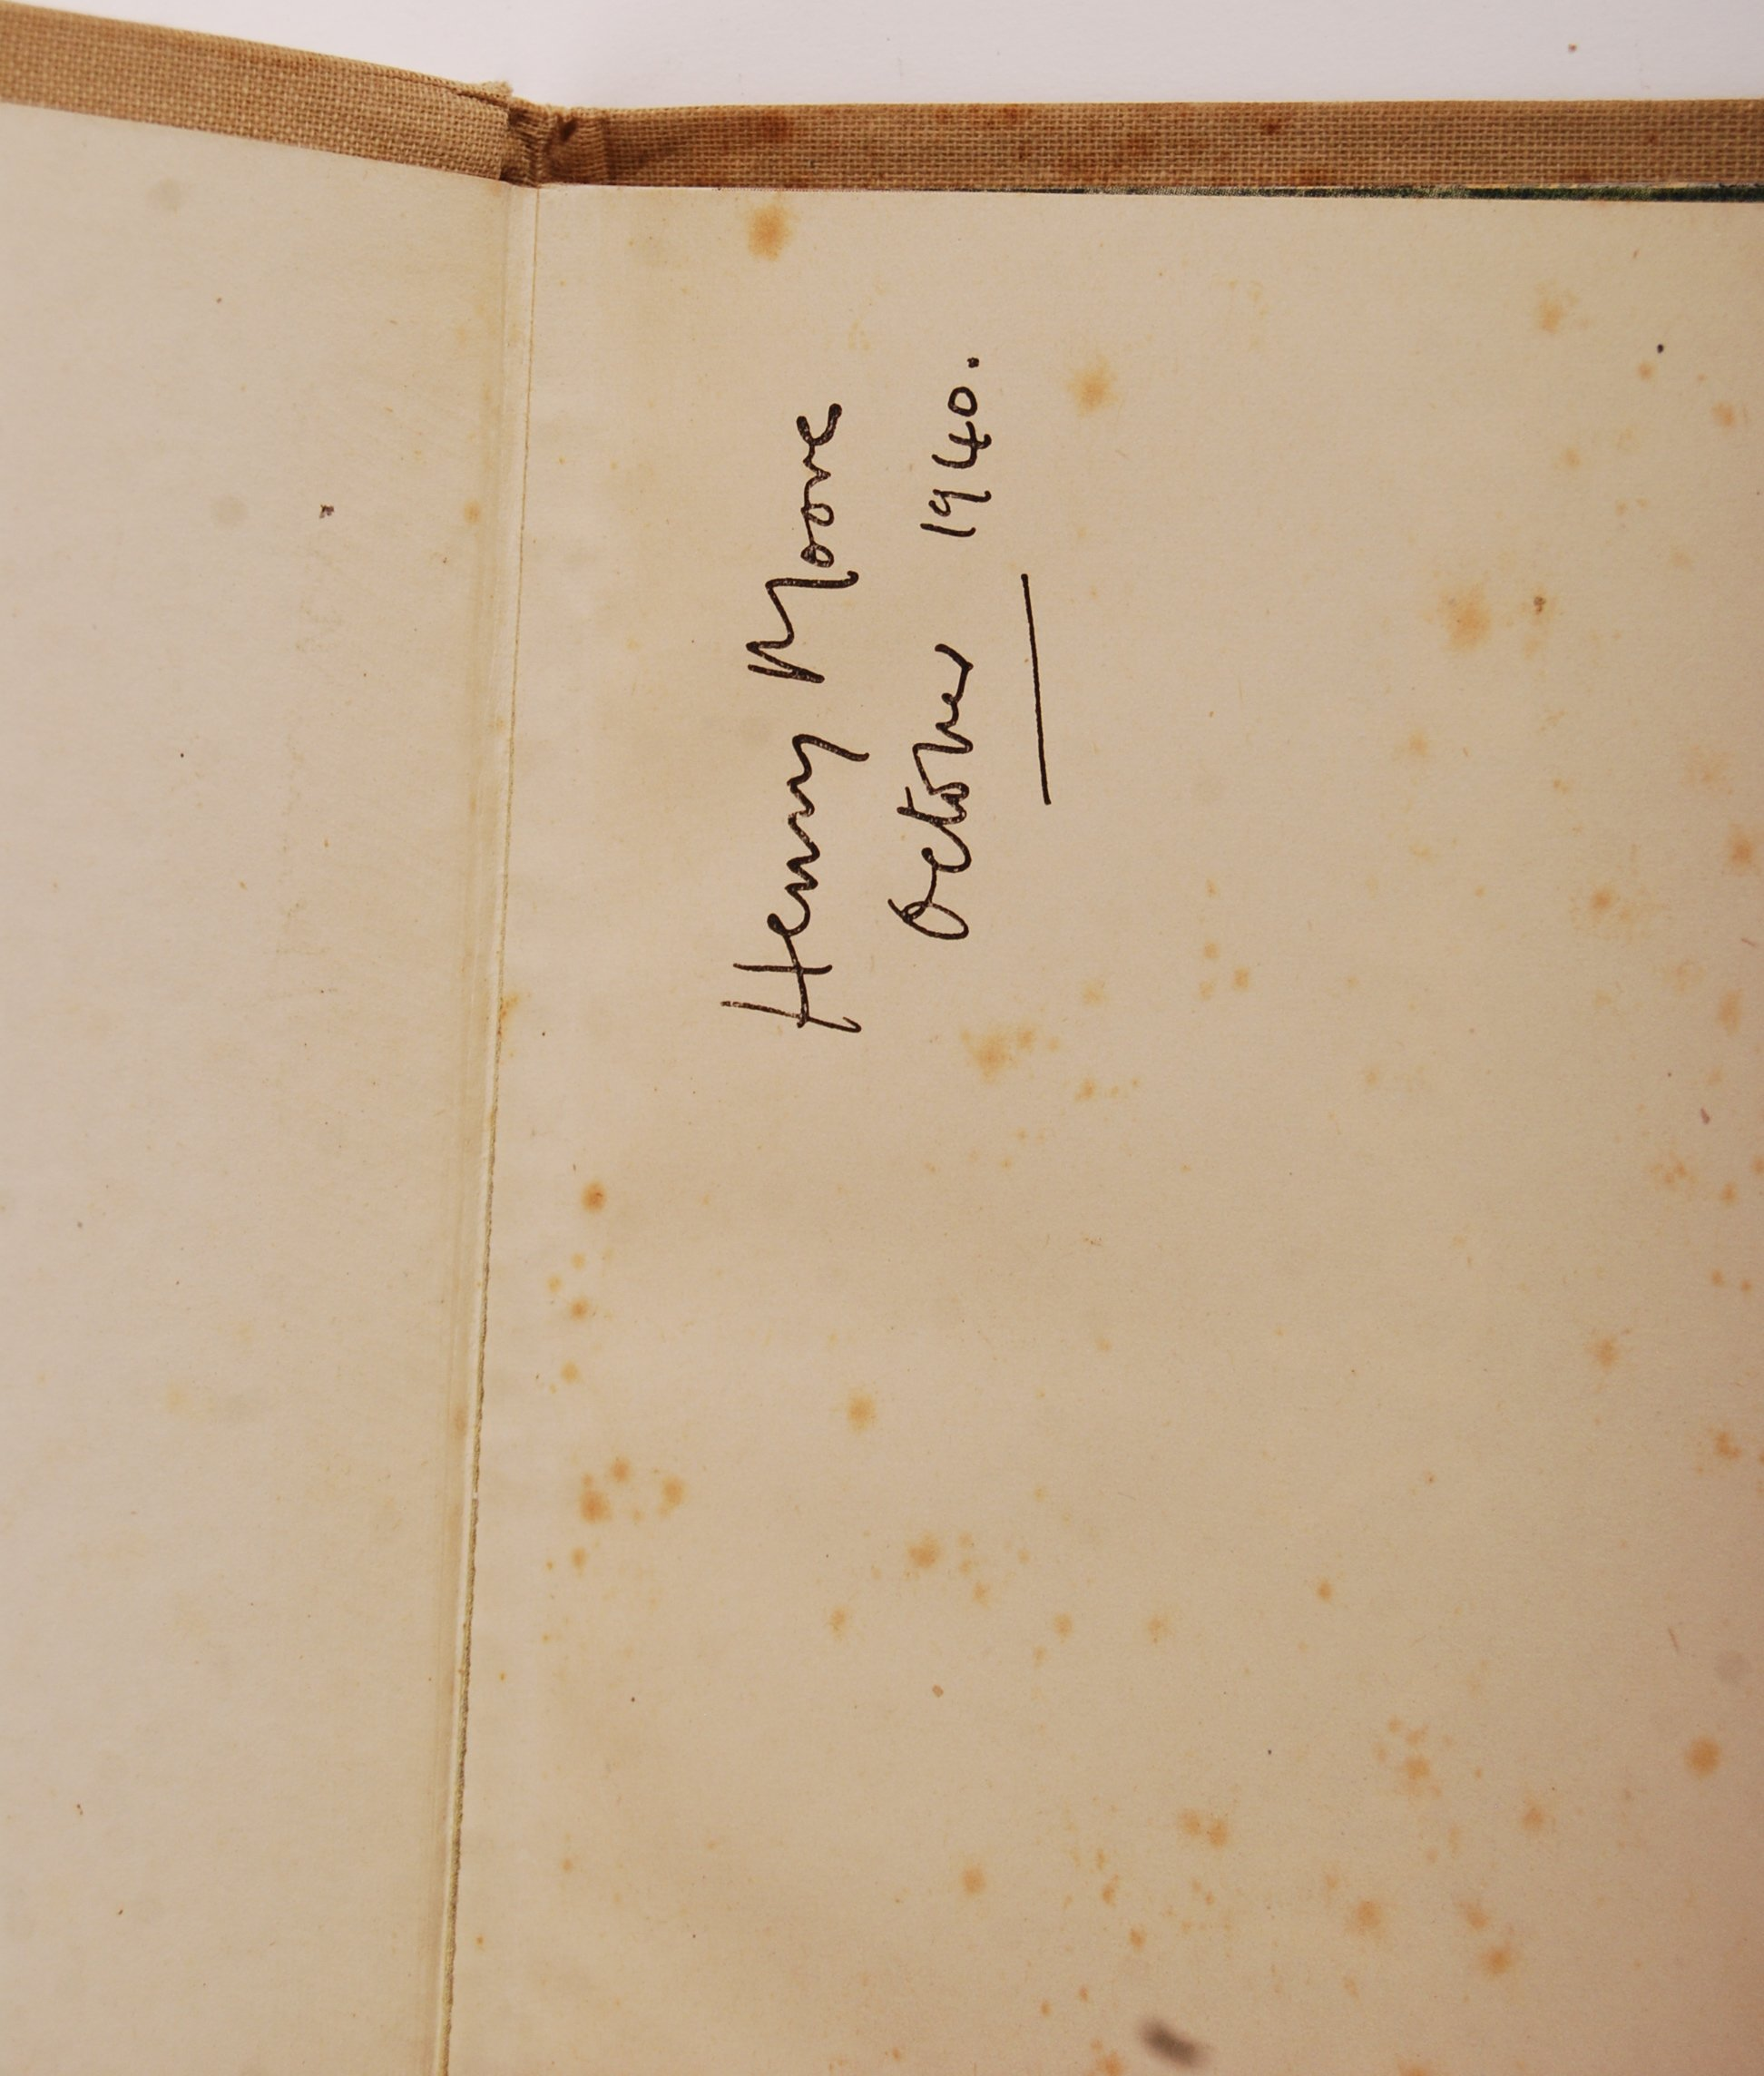 HENRY MOORE WWII SECOND WORLD WAR SHELTER SKETCH BOOK - Image 2 of 8